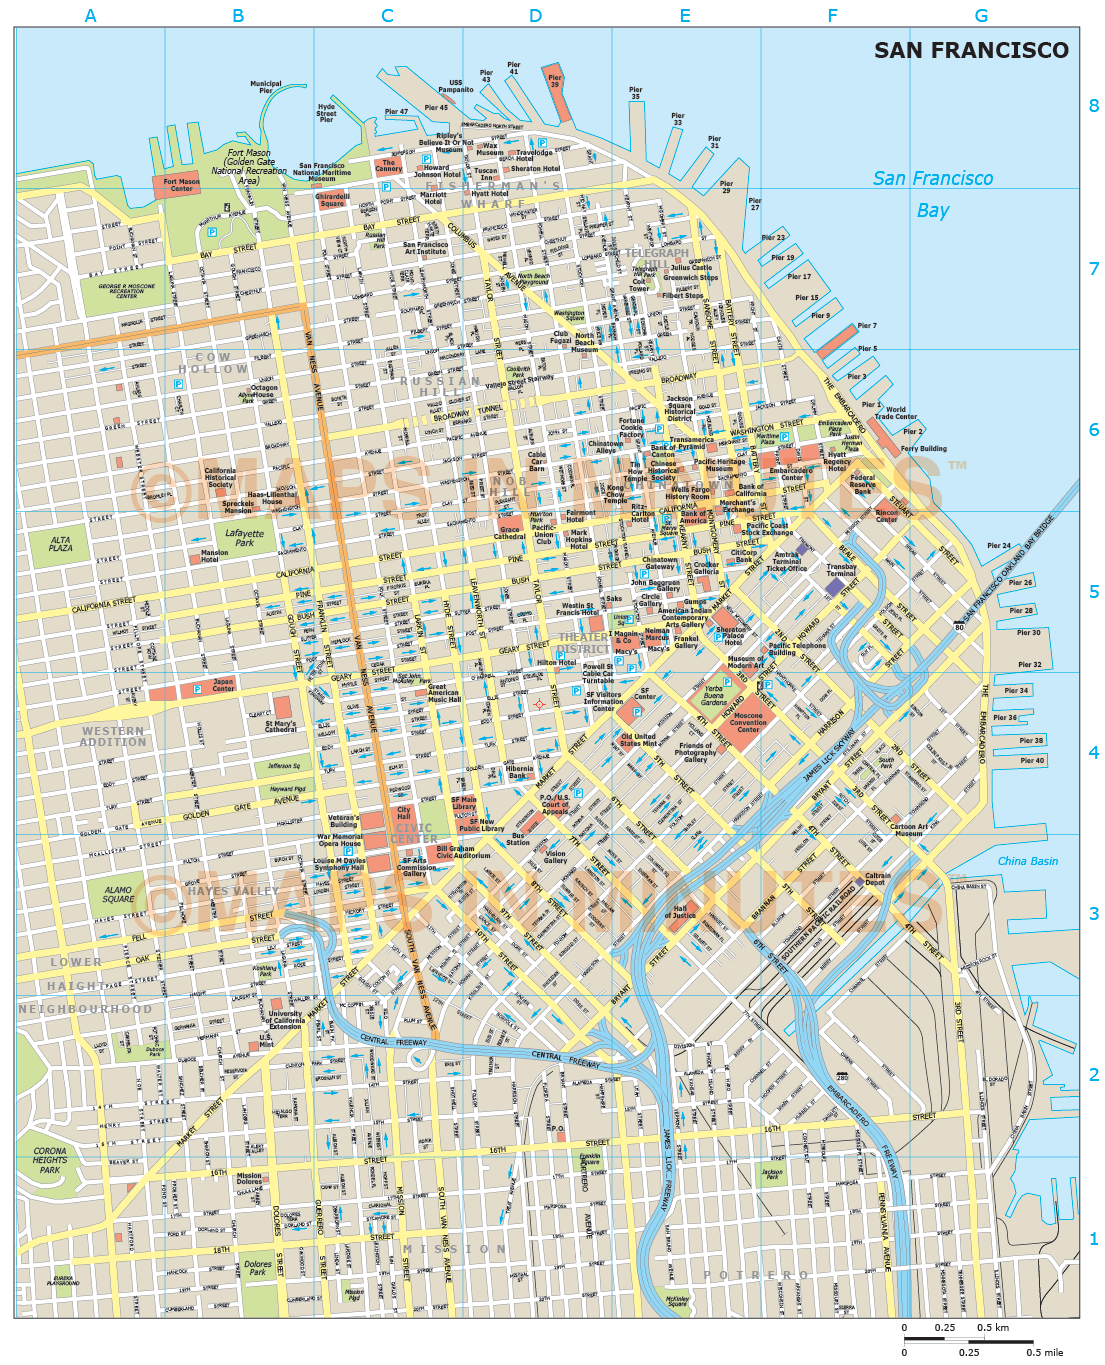 image regarding Printable Map of San Francisco named royalty totally free san francisco illustrator vector structure town map